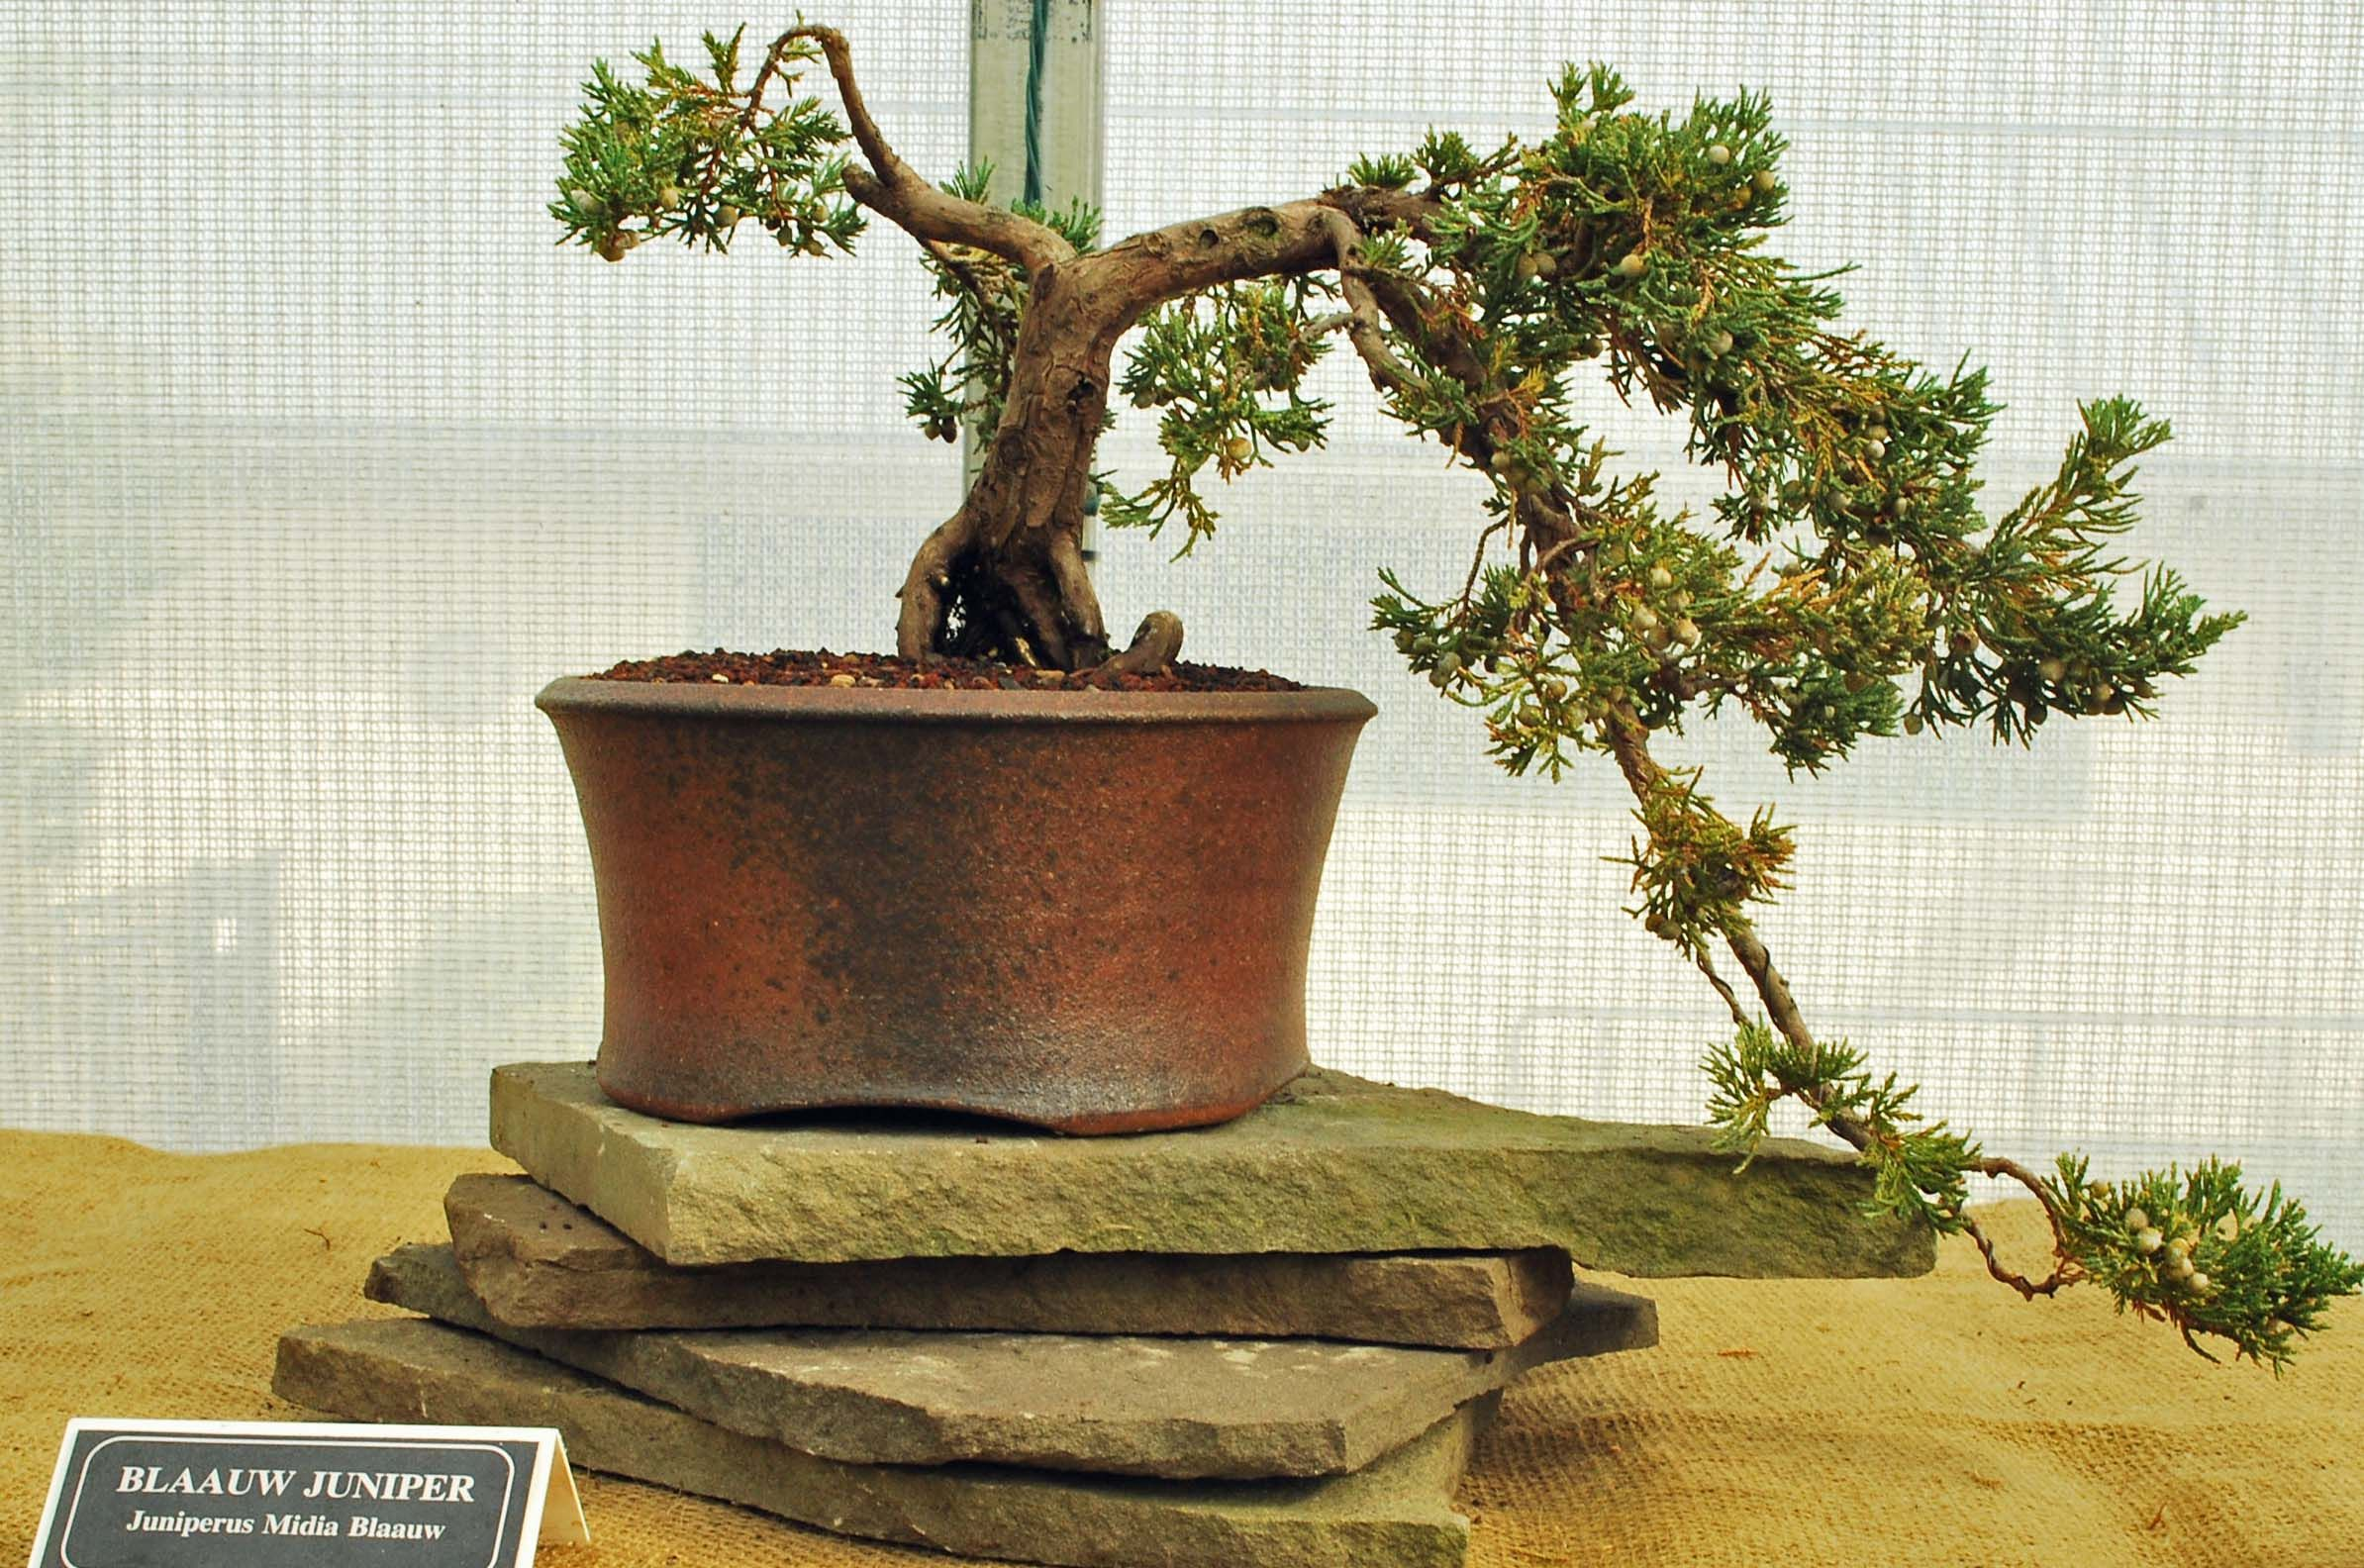 How To Revive A Bonsai Tree With Brown Leaves Bonsai Tree Gardener In 2020 Indoor Bonsai Tree Bonsai Tree Care Bonsai Tree